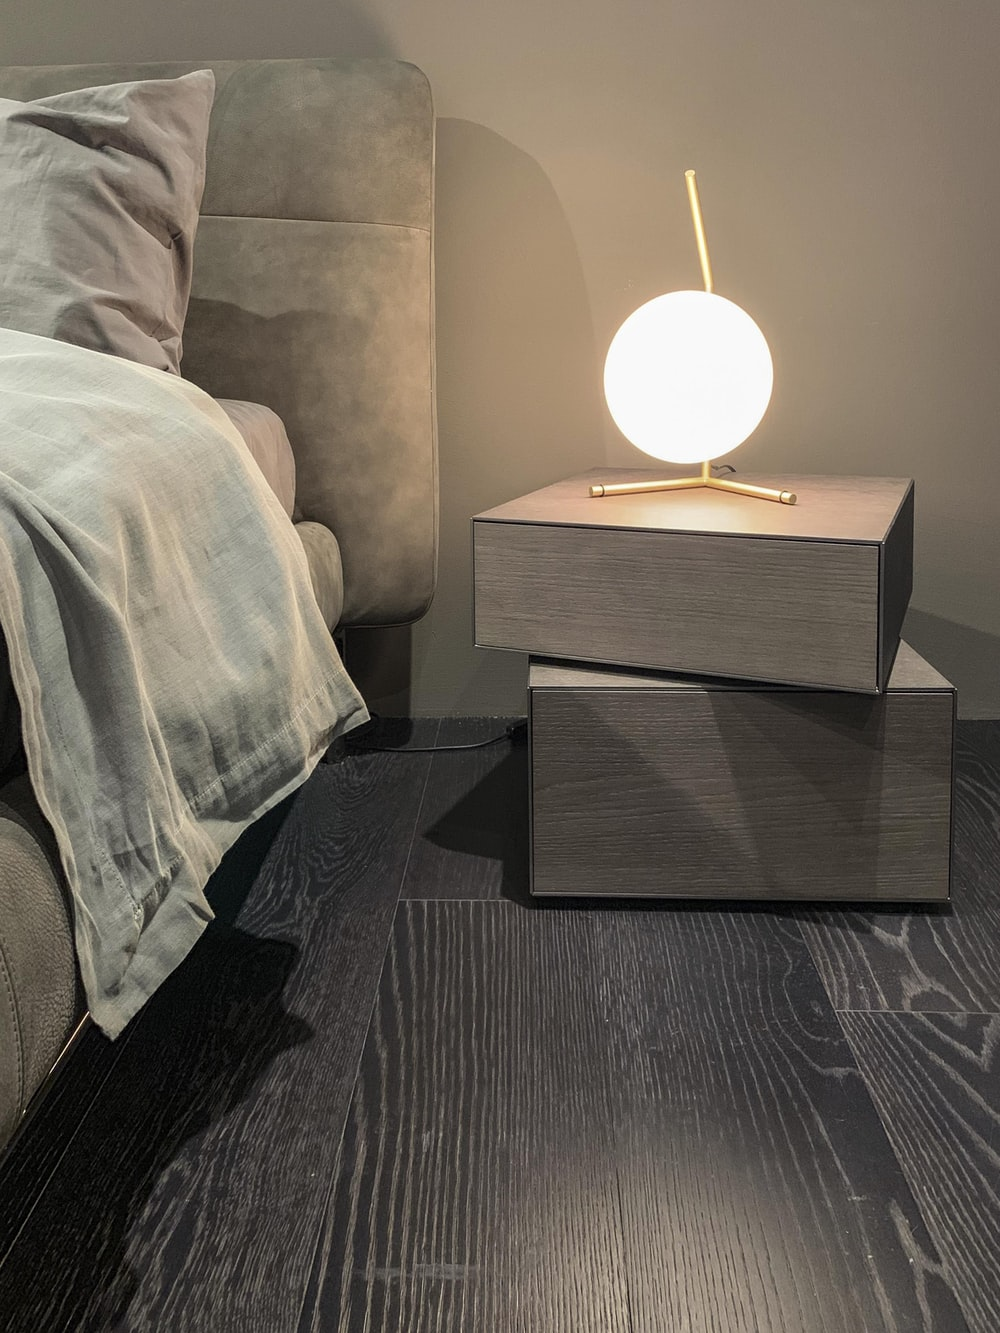 white and brown table lamp close-up photography